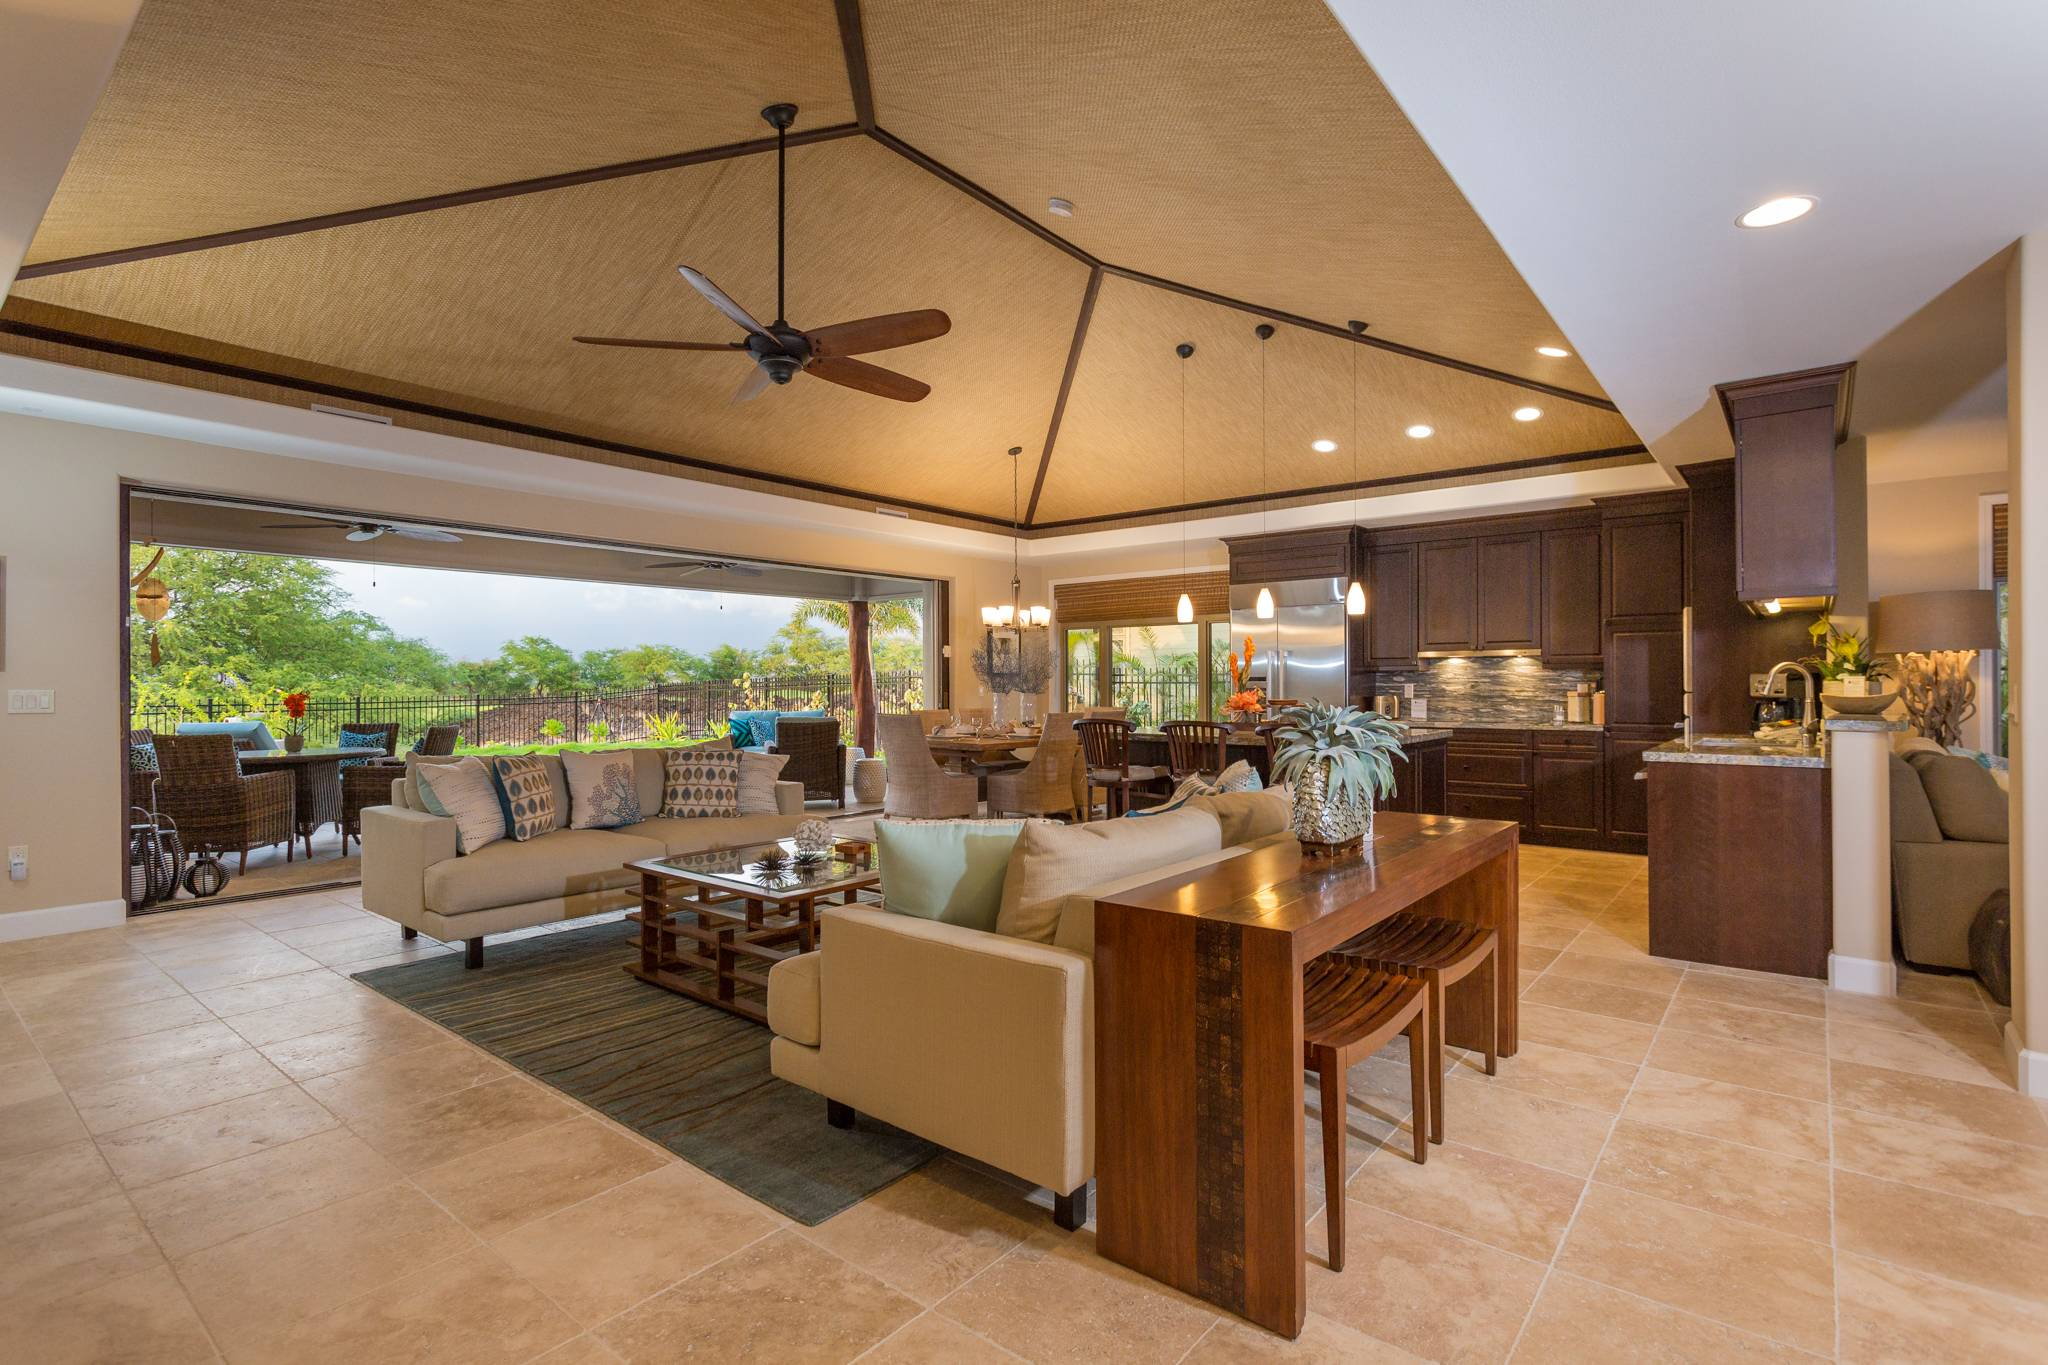 Kitchen and living room at KaMilo private Big Island home